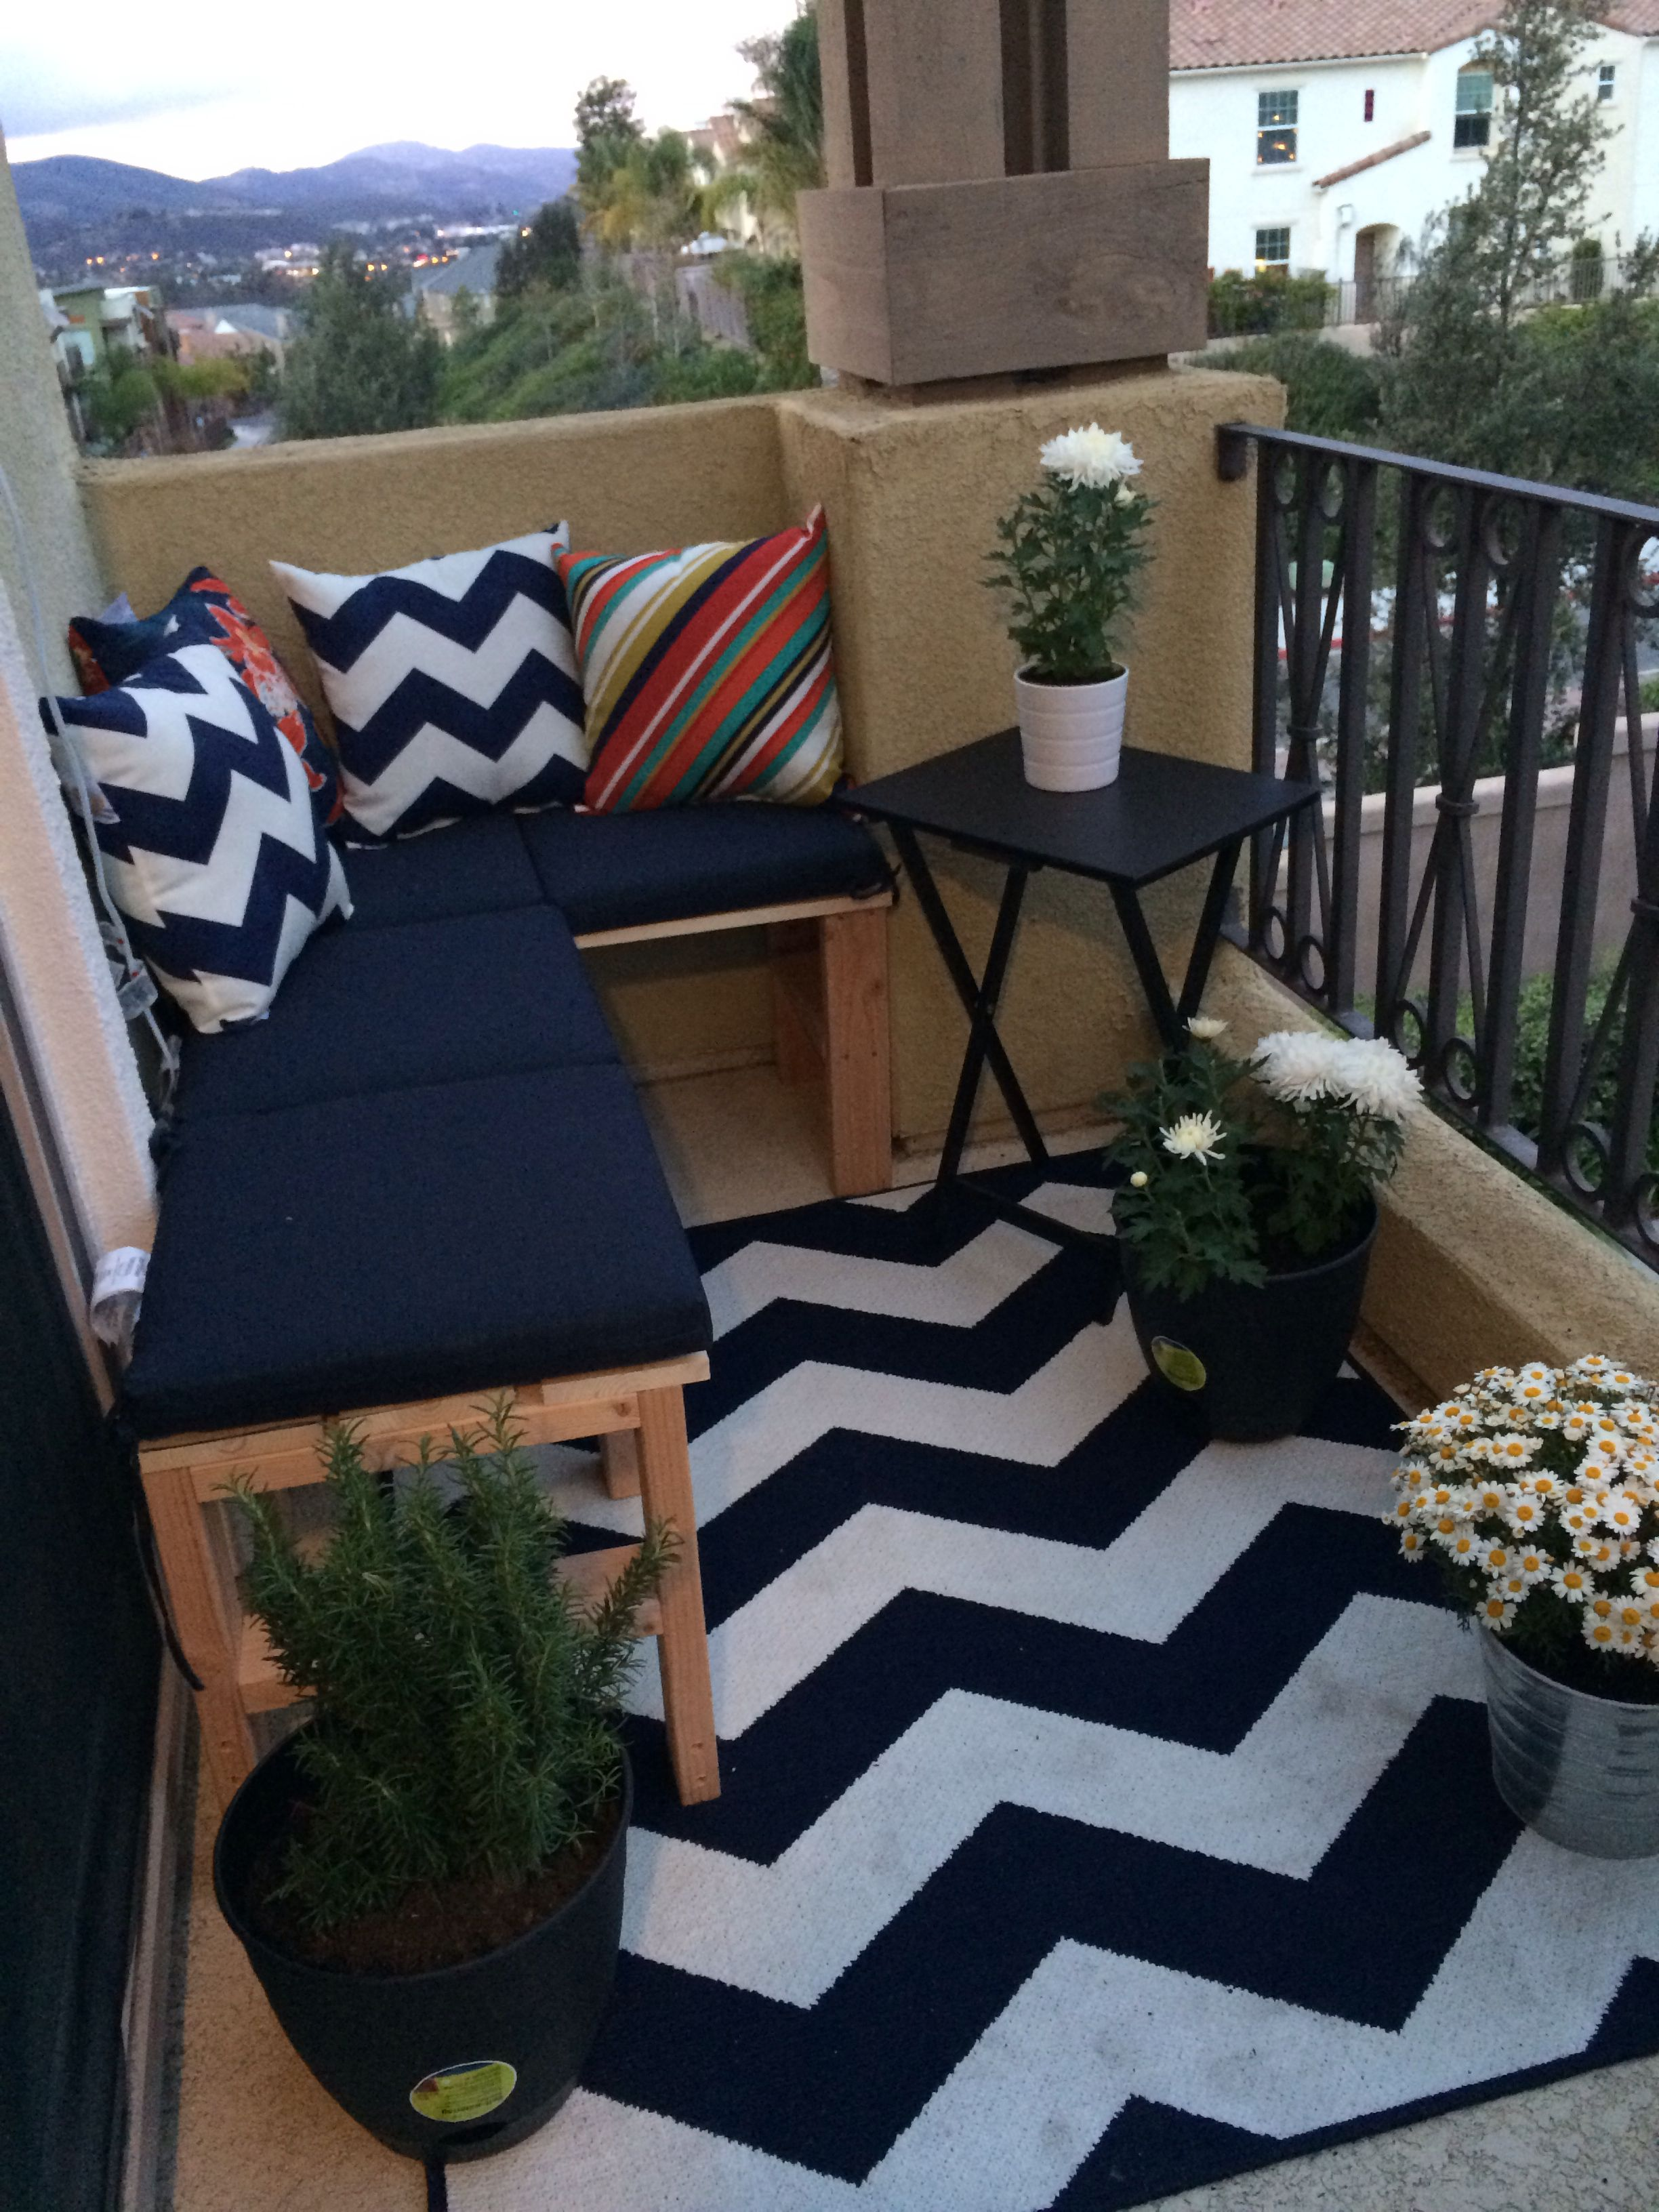 Idée Deco Appartement Pinterest Jumpstart Your Day 5 Pretty Balconies From Pinterest Backyard